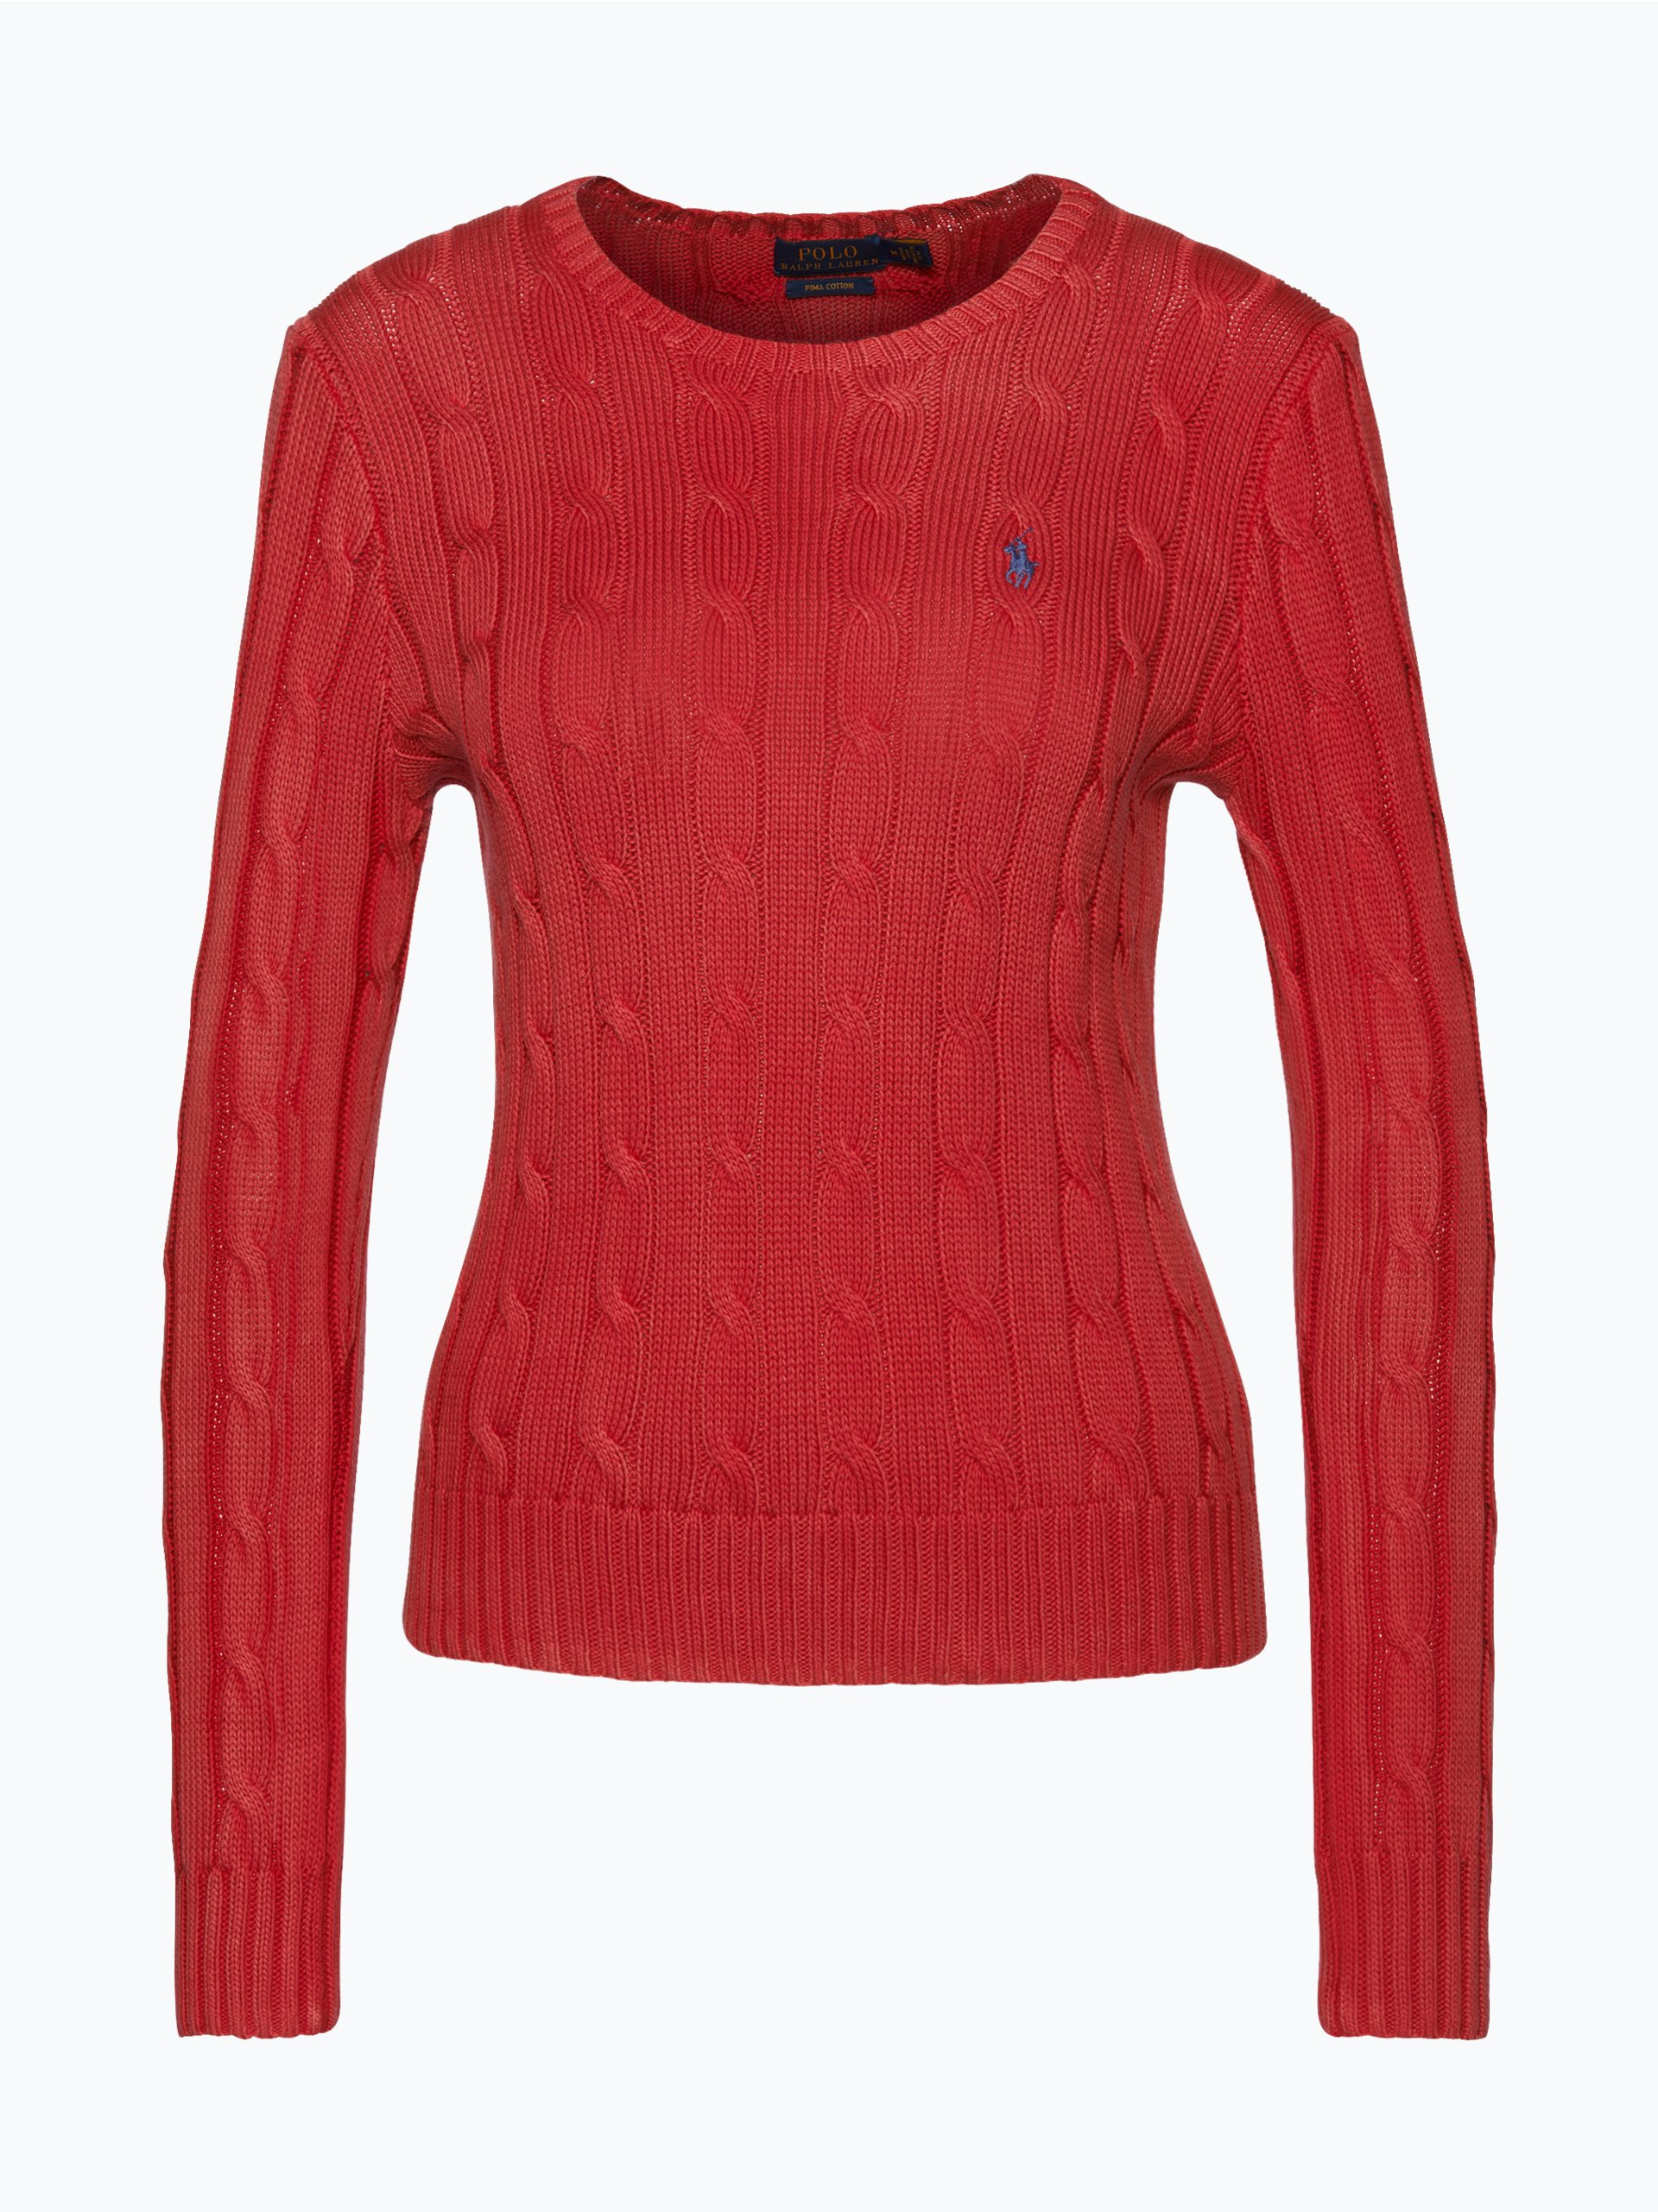 polo ralph lauren damen pullover rot uni online kaufen. Black Bedroom Furniture Sets. Home Design Ideas